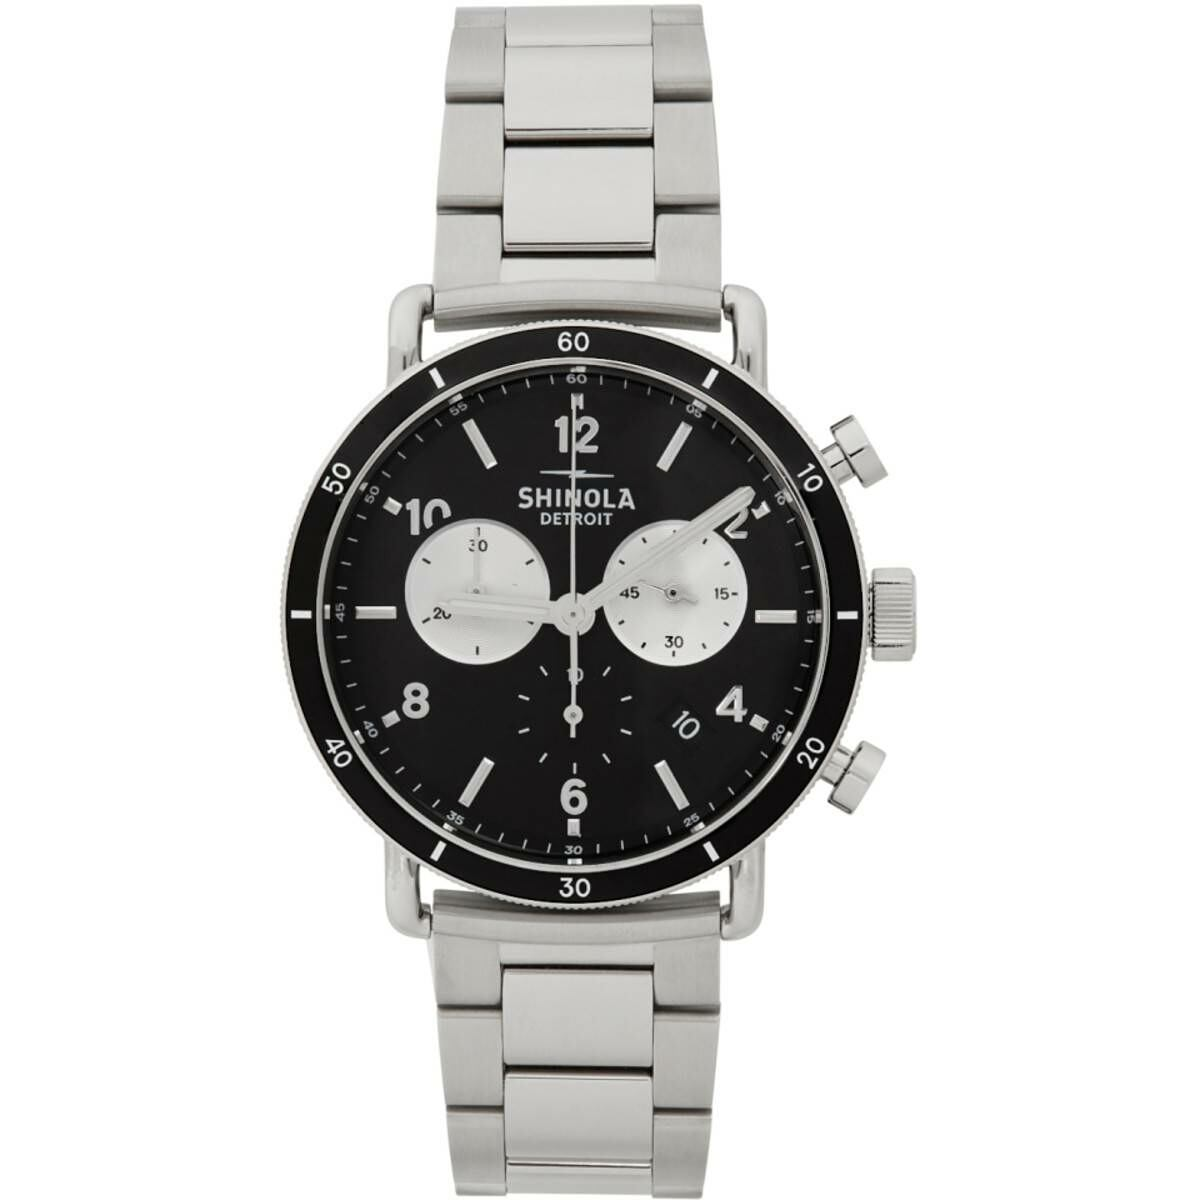 Shinola Silver and Black The Canfield Sport 40mm Watch Ssense USA MEN Men ACCESSORIES Mens WATCHES